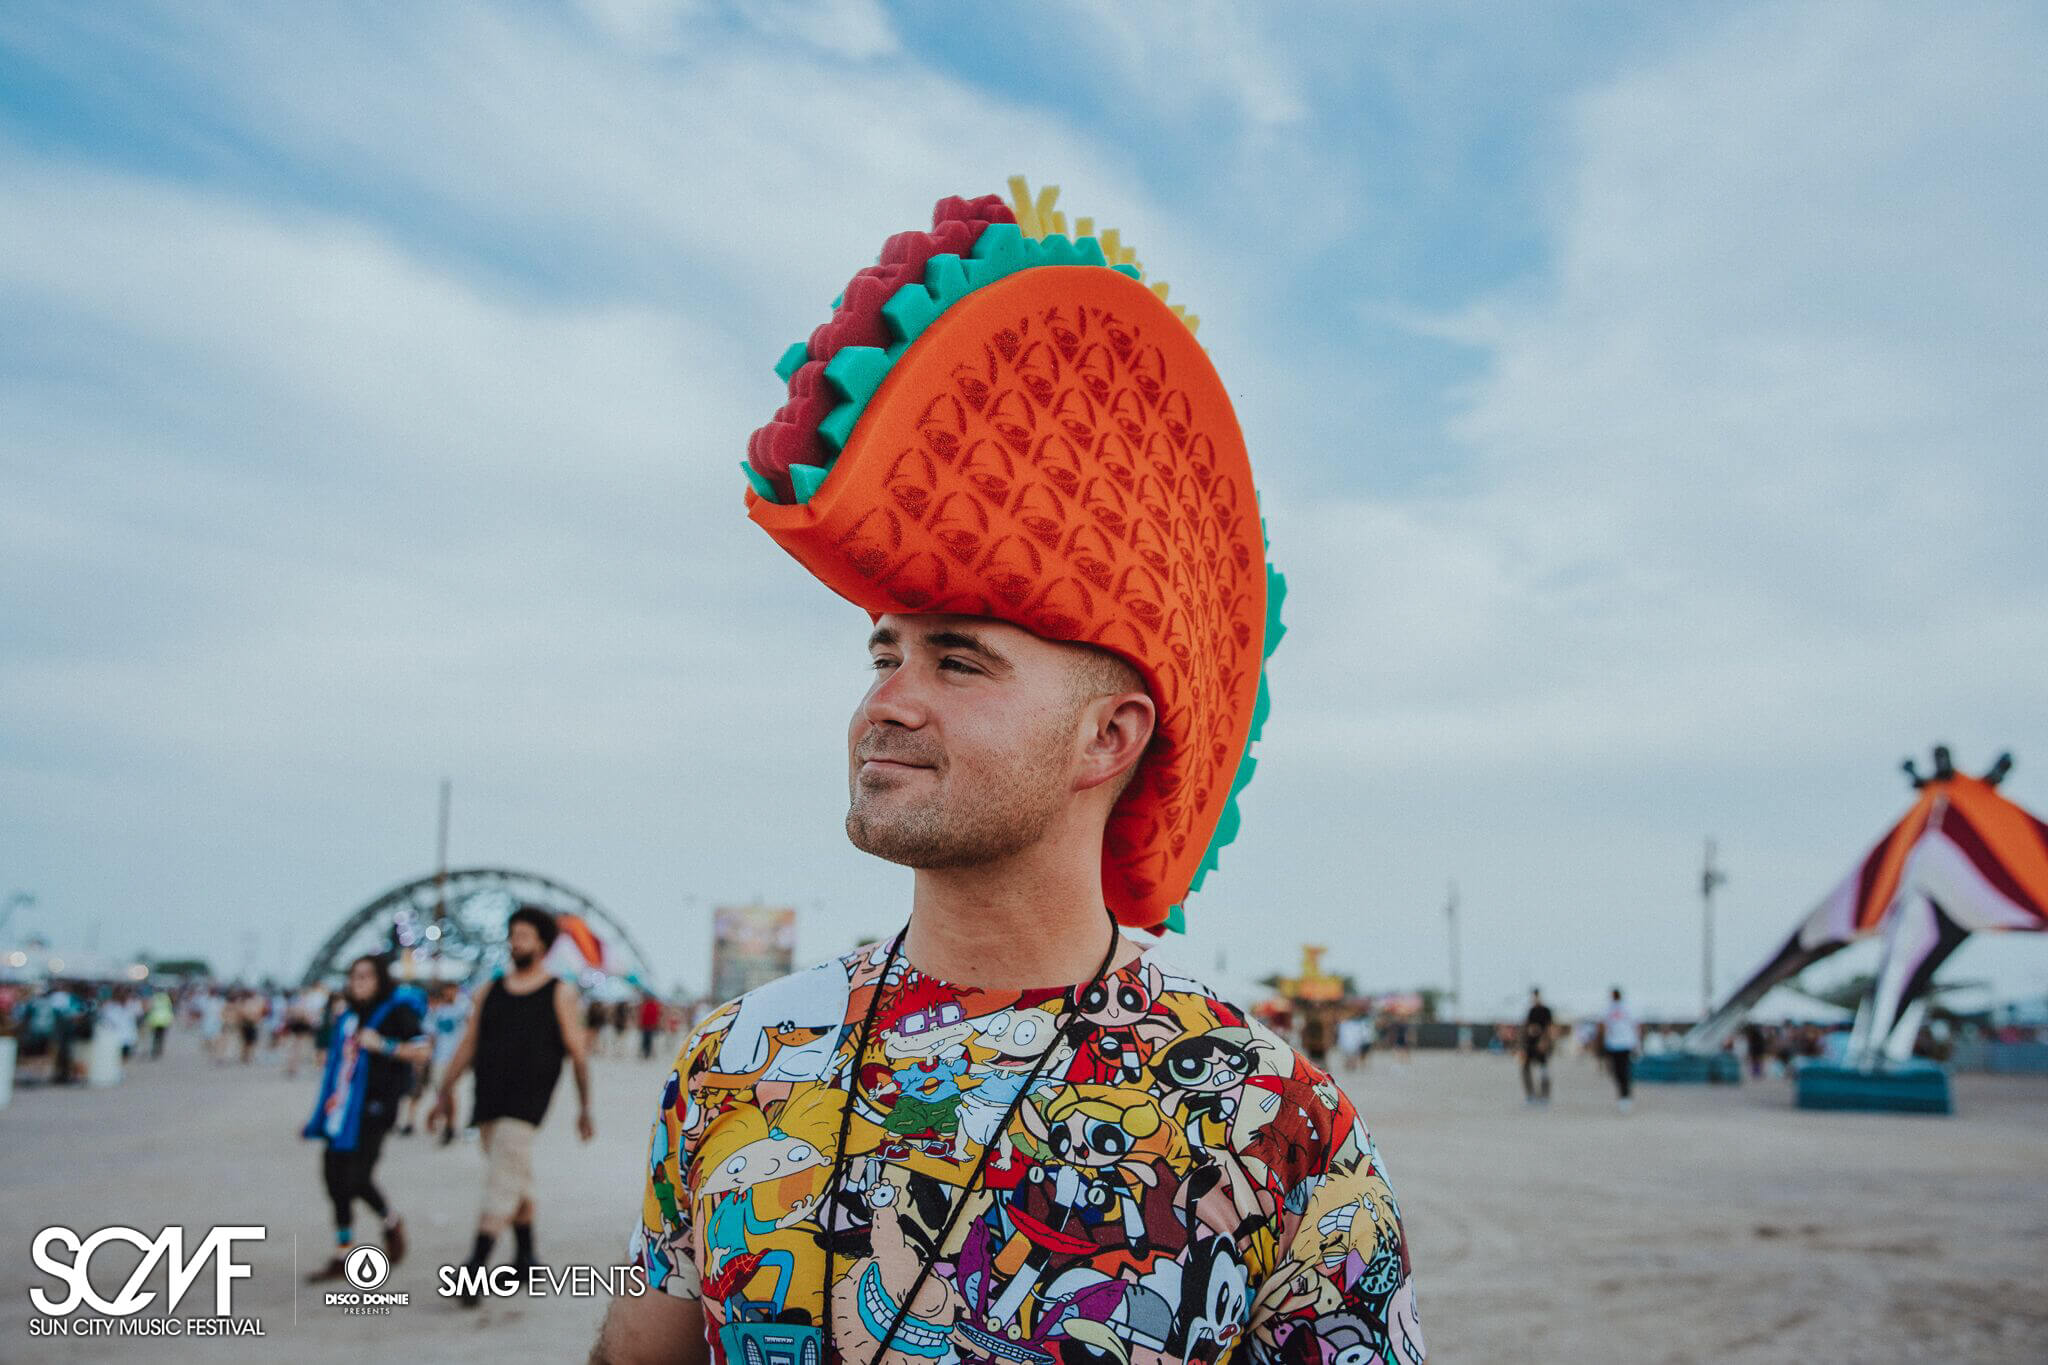 festival fan wearing taco hat